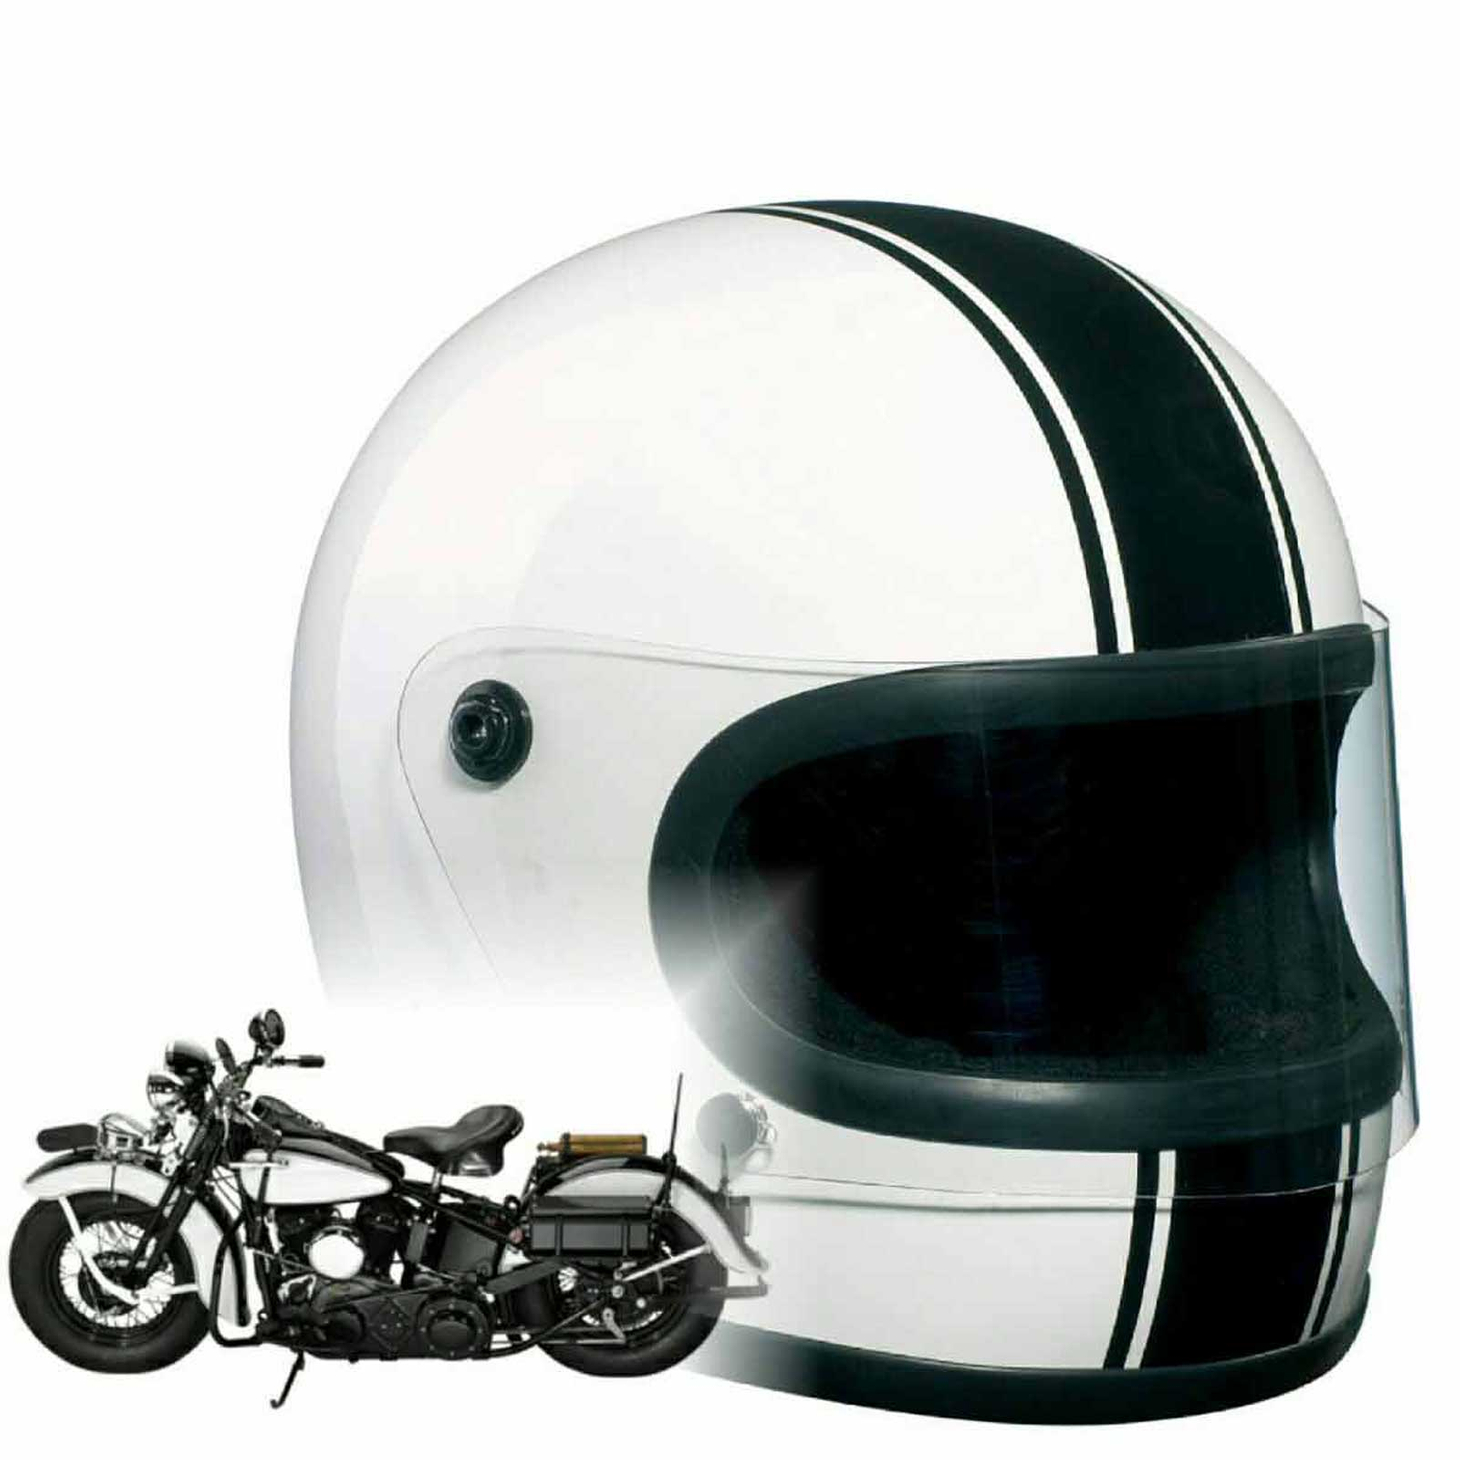 Bandit - Integral - New Original Motorcycle Helmet - Full Face - Fibreglass Shell